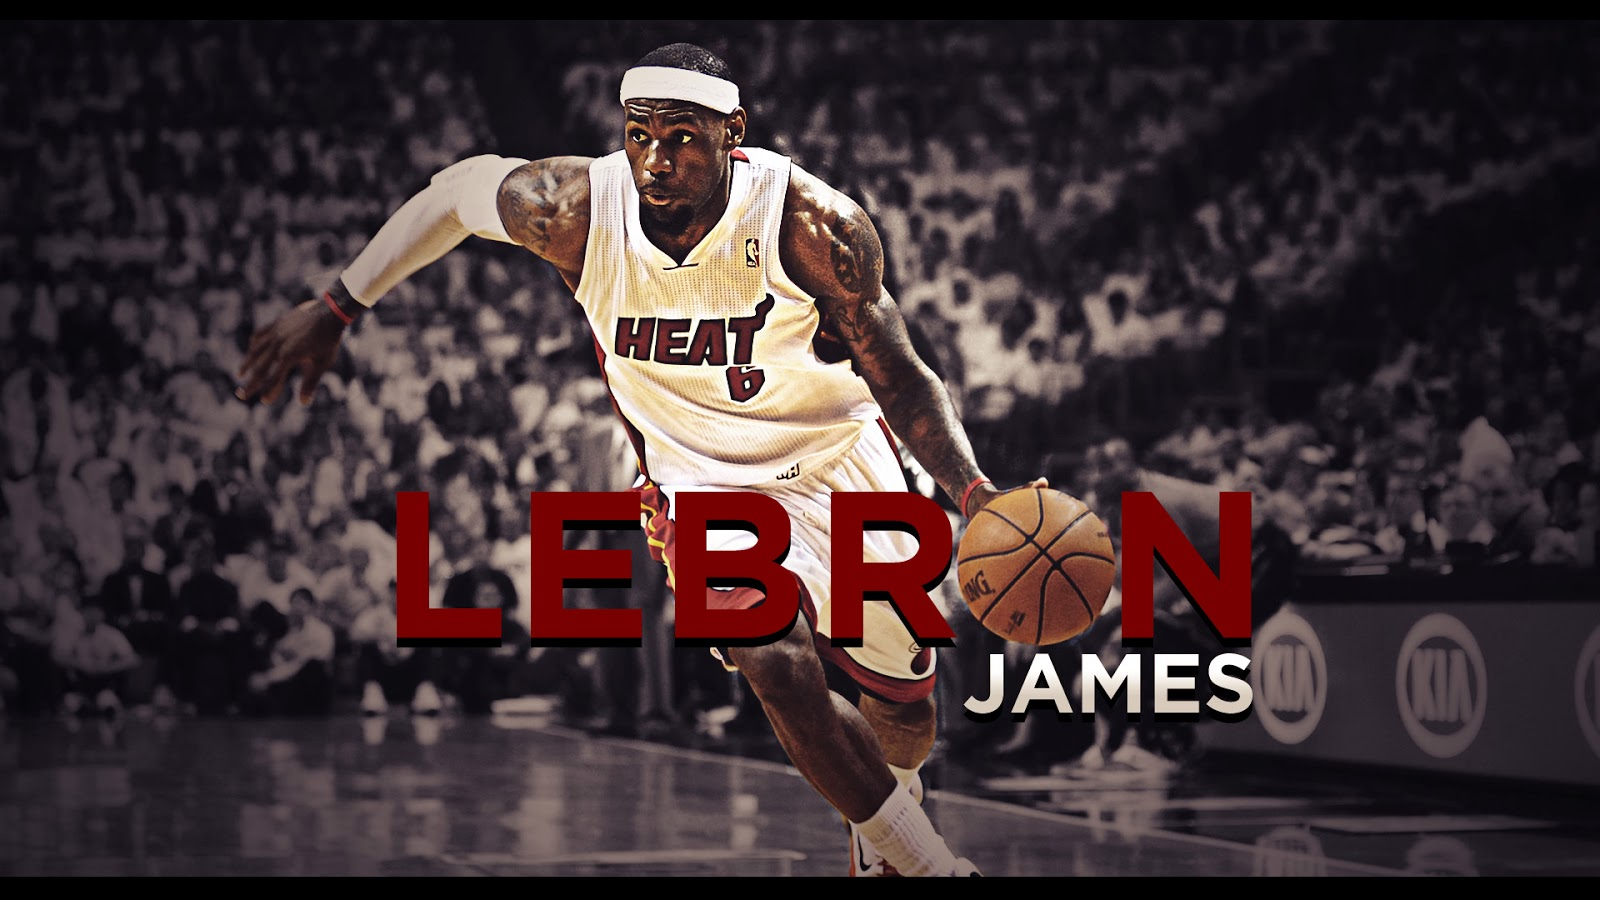 Lebron James New Wallpaper 2014  Its All About Basketball